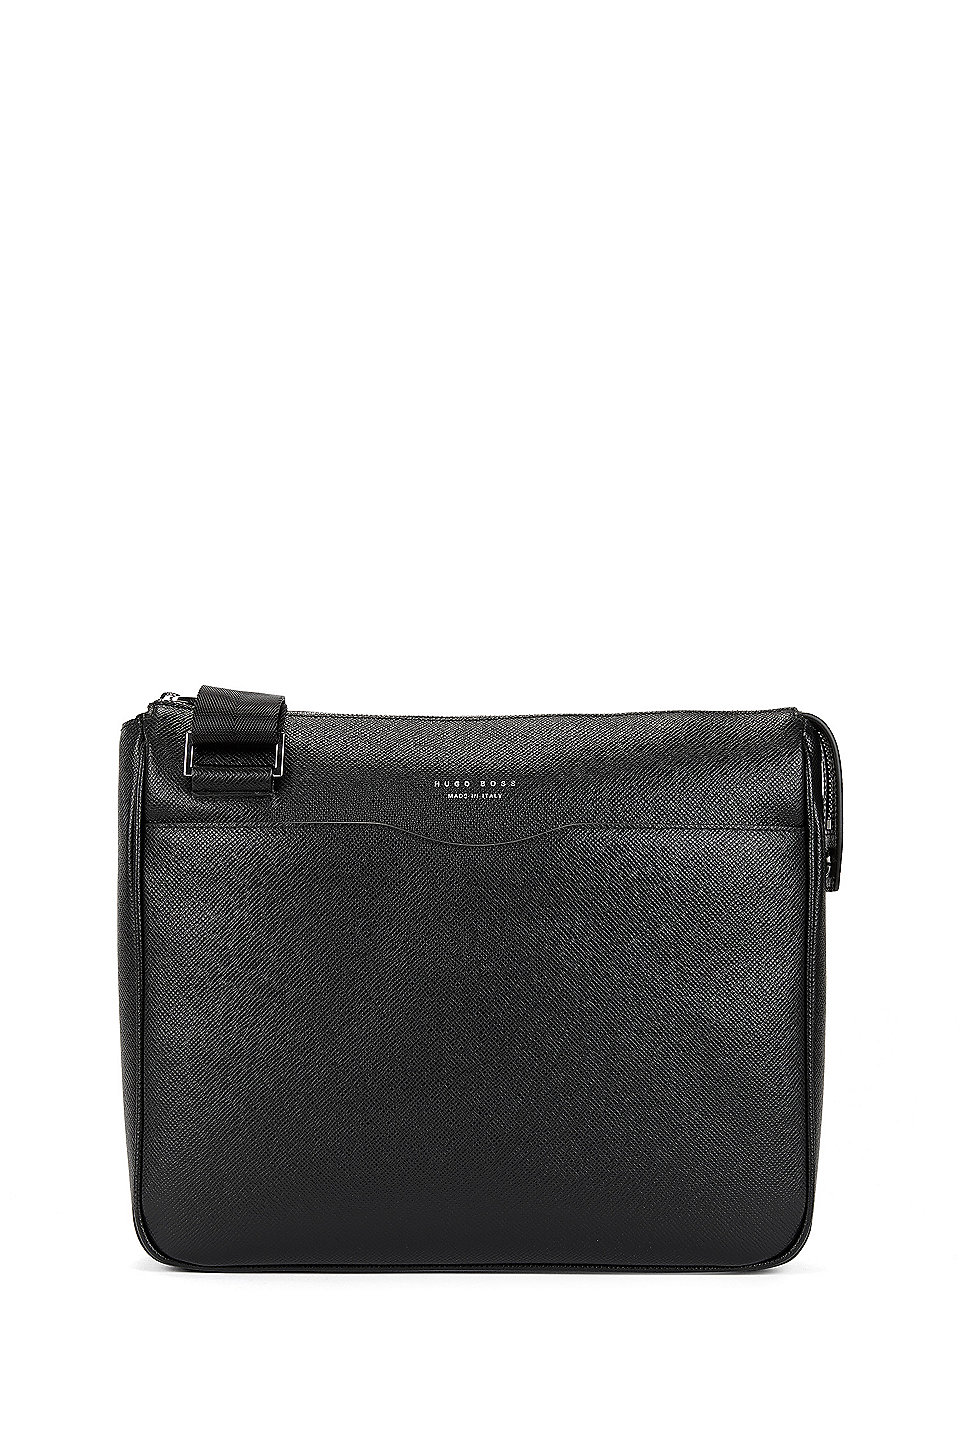 3bca300e0cc1 BOSS - Leather Crossbody